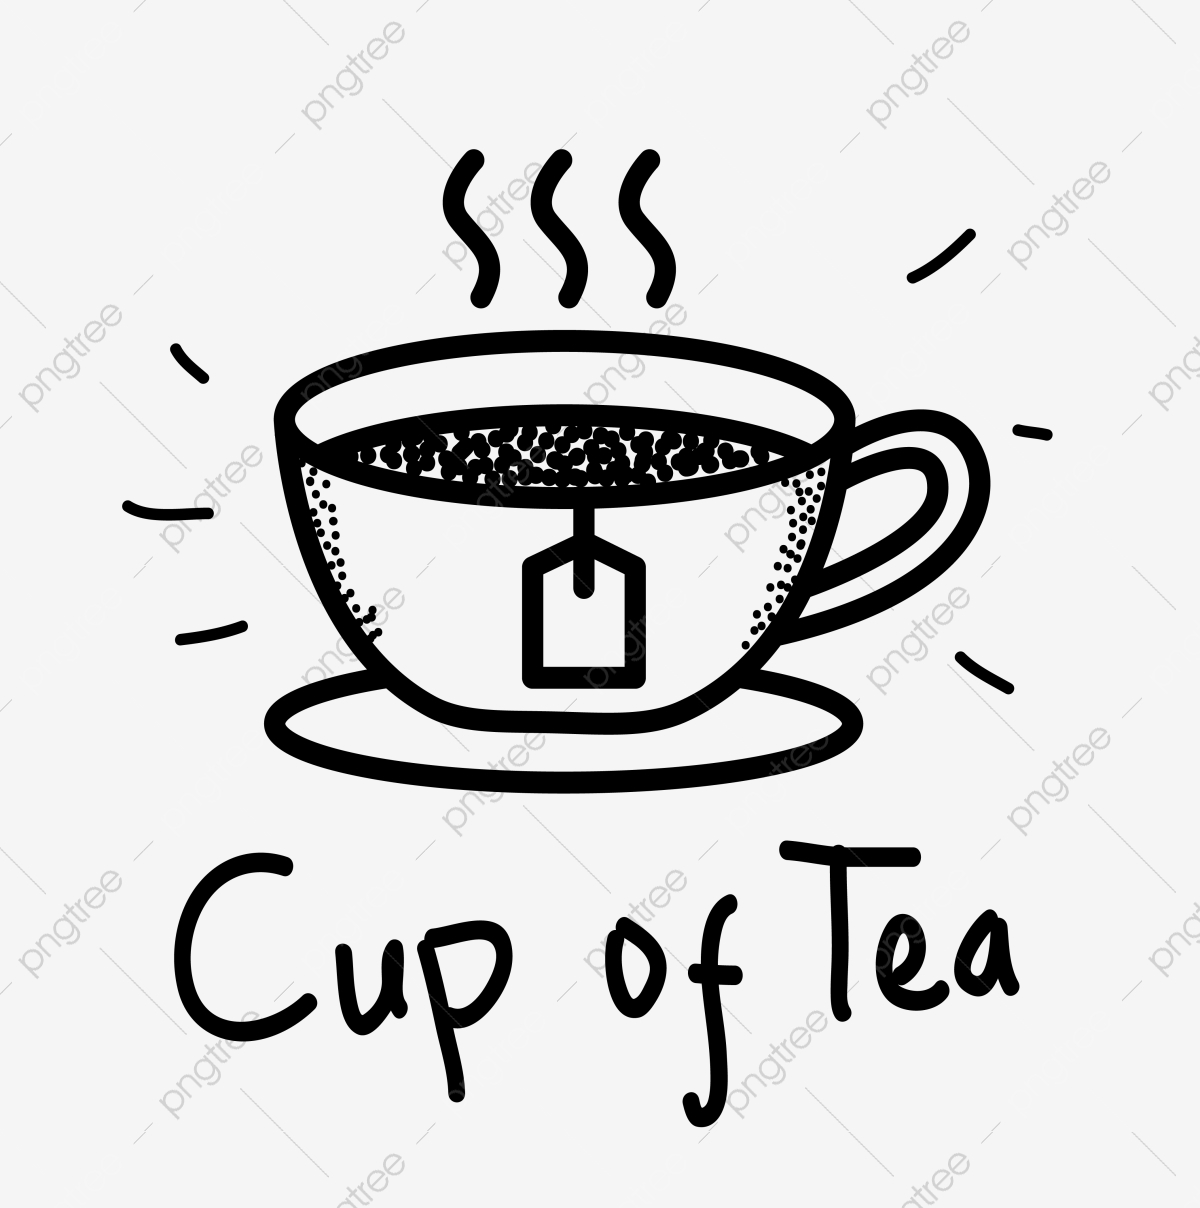 tea vector png free green tea tea cup milk tea vector images pngtree https pngtree com freepng cup of tea vector illustration with black and white hand drawn style tea doodle 5301199 html